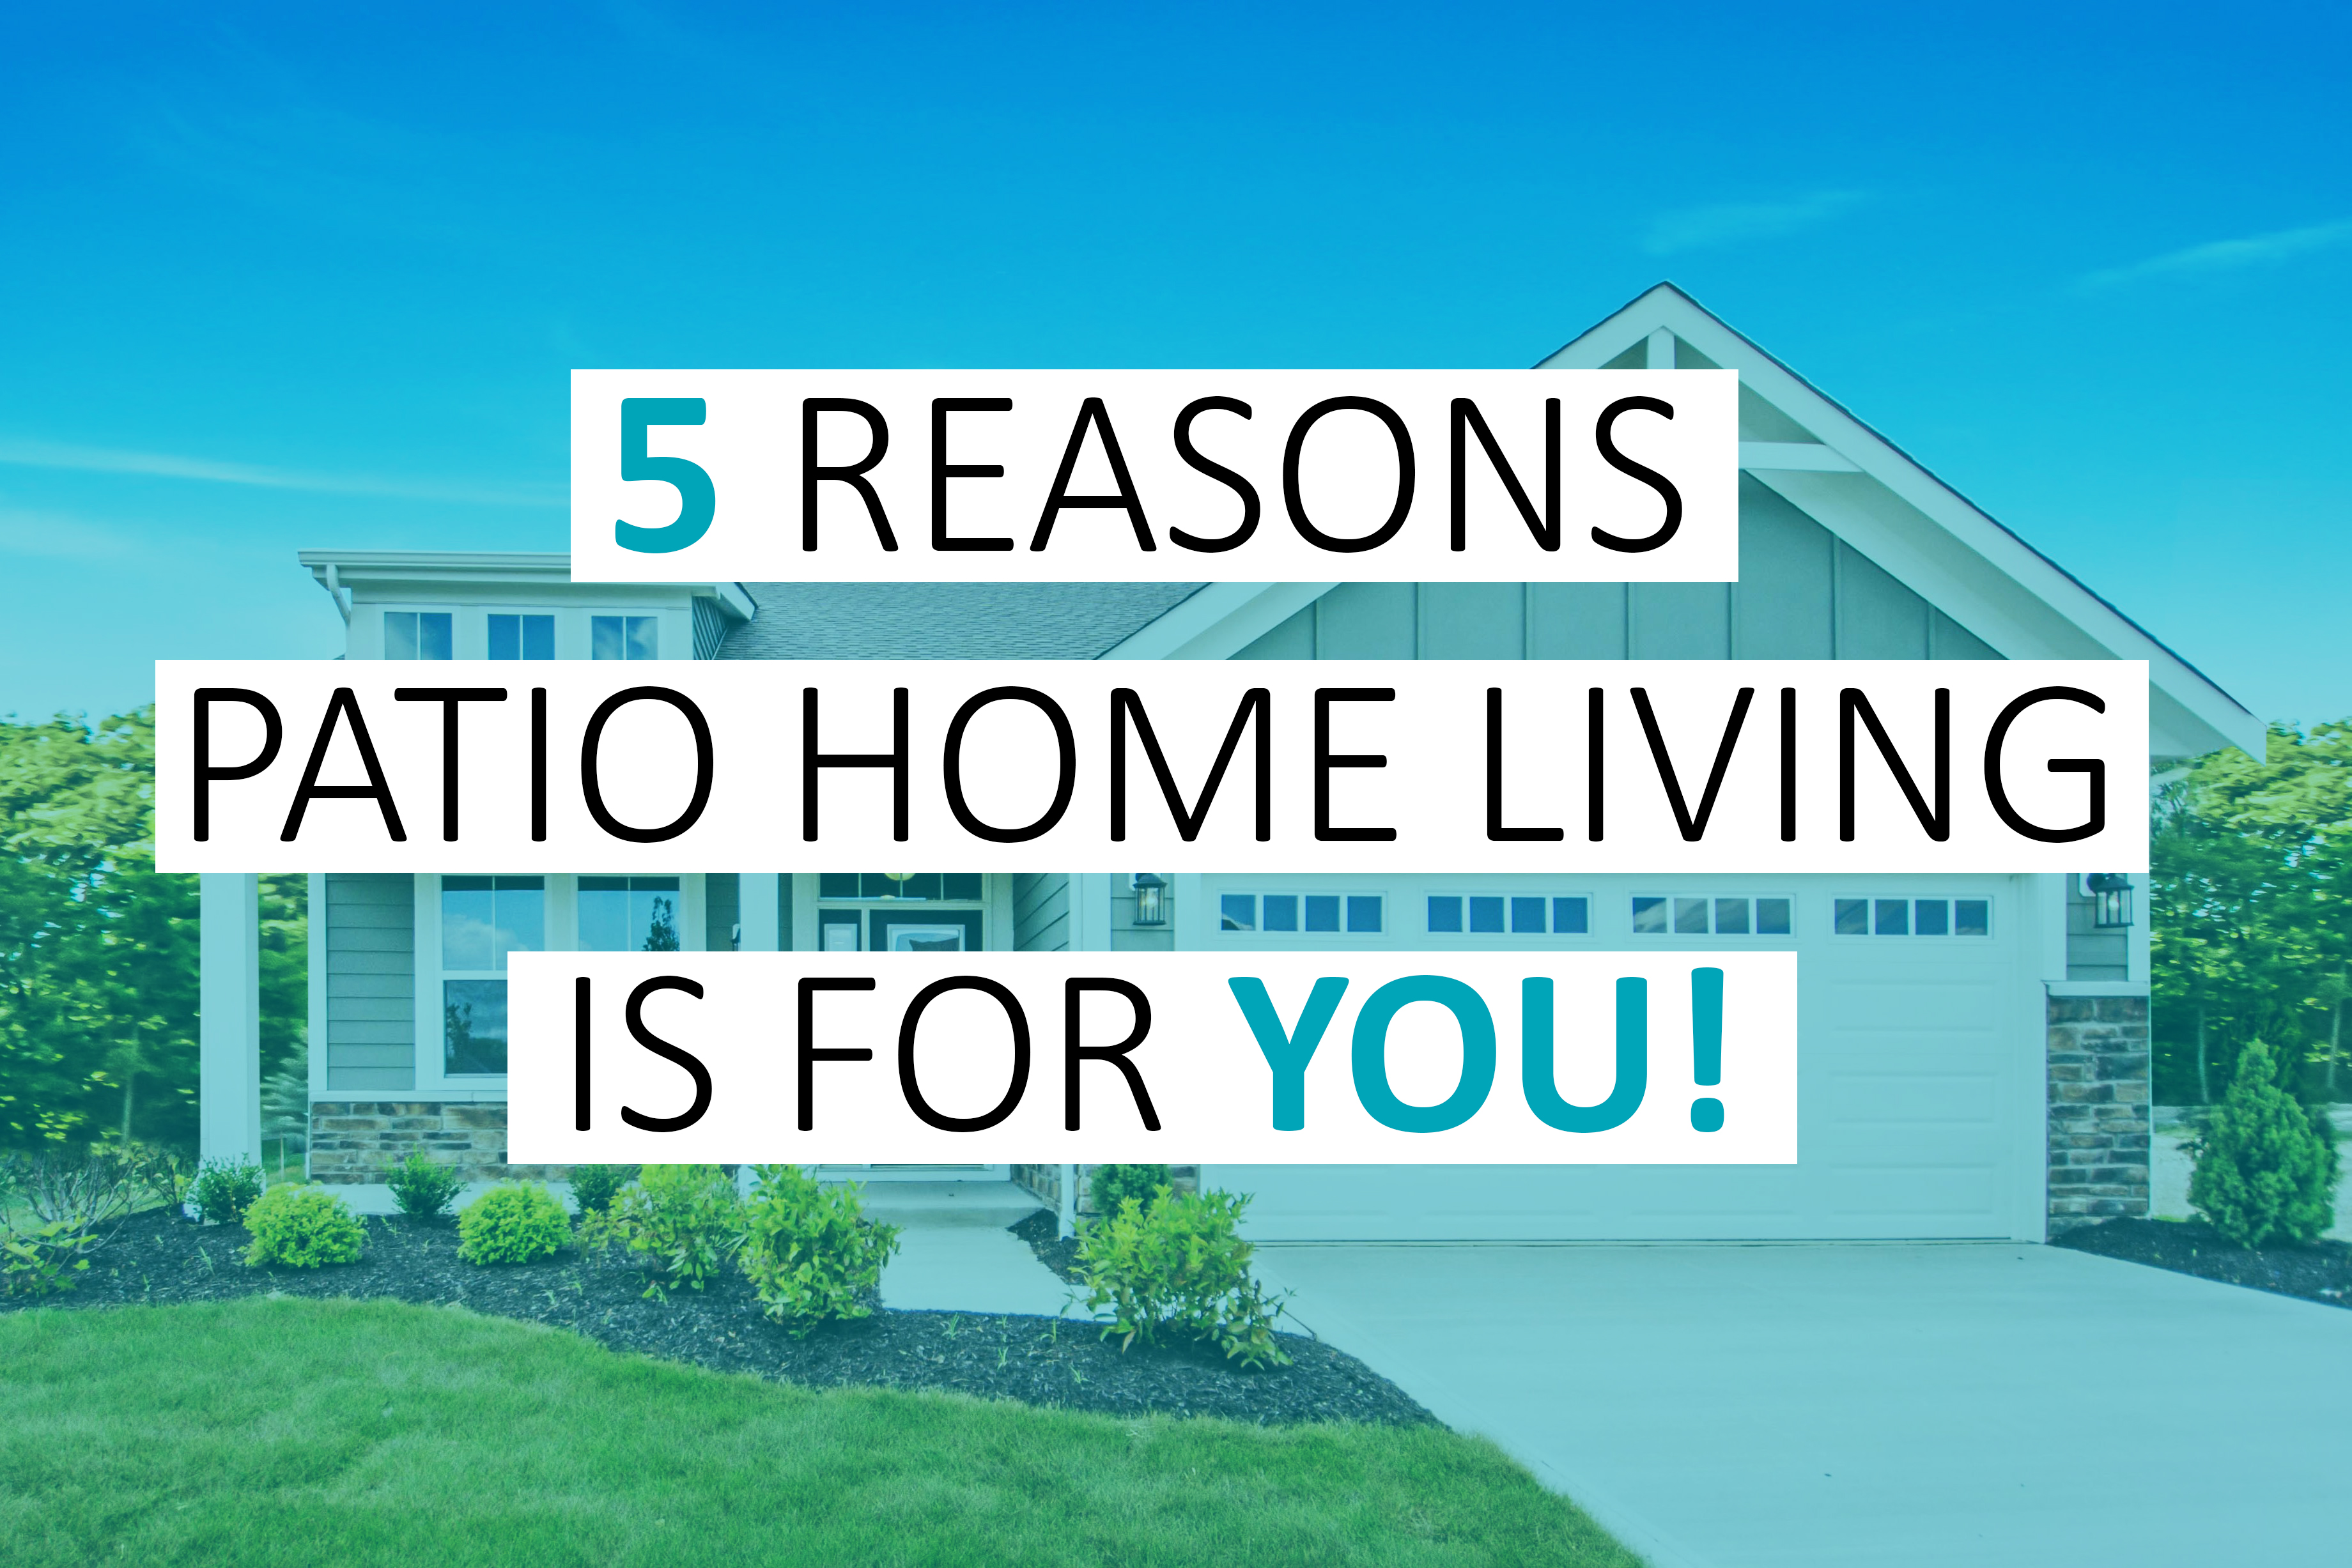 Five reasons patio home living is for you!